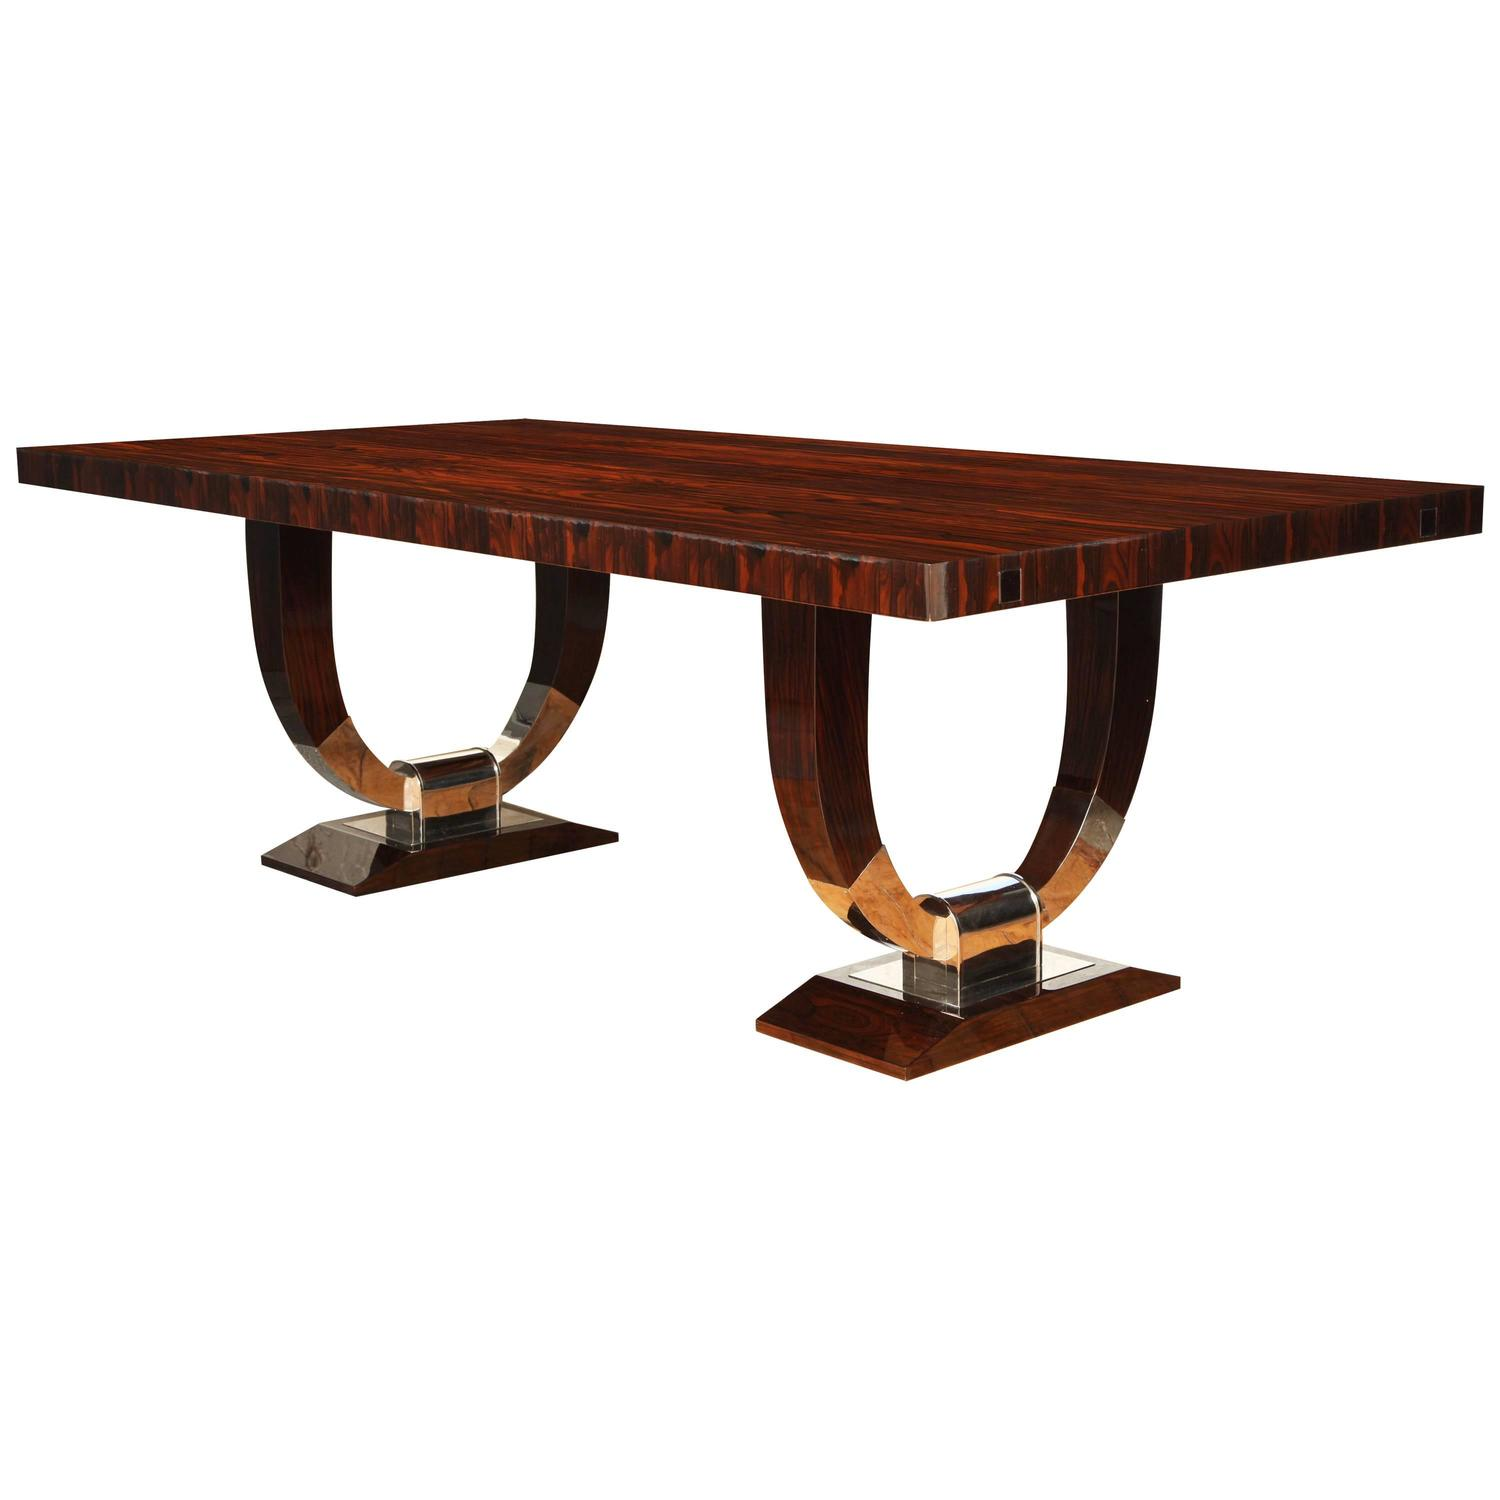 Elegant art deco dining table at 1stdibs for Art dining room furniture